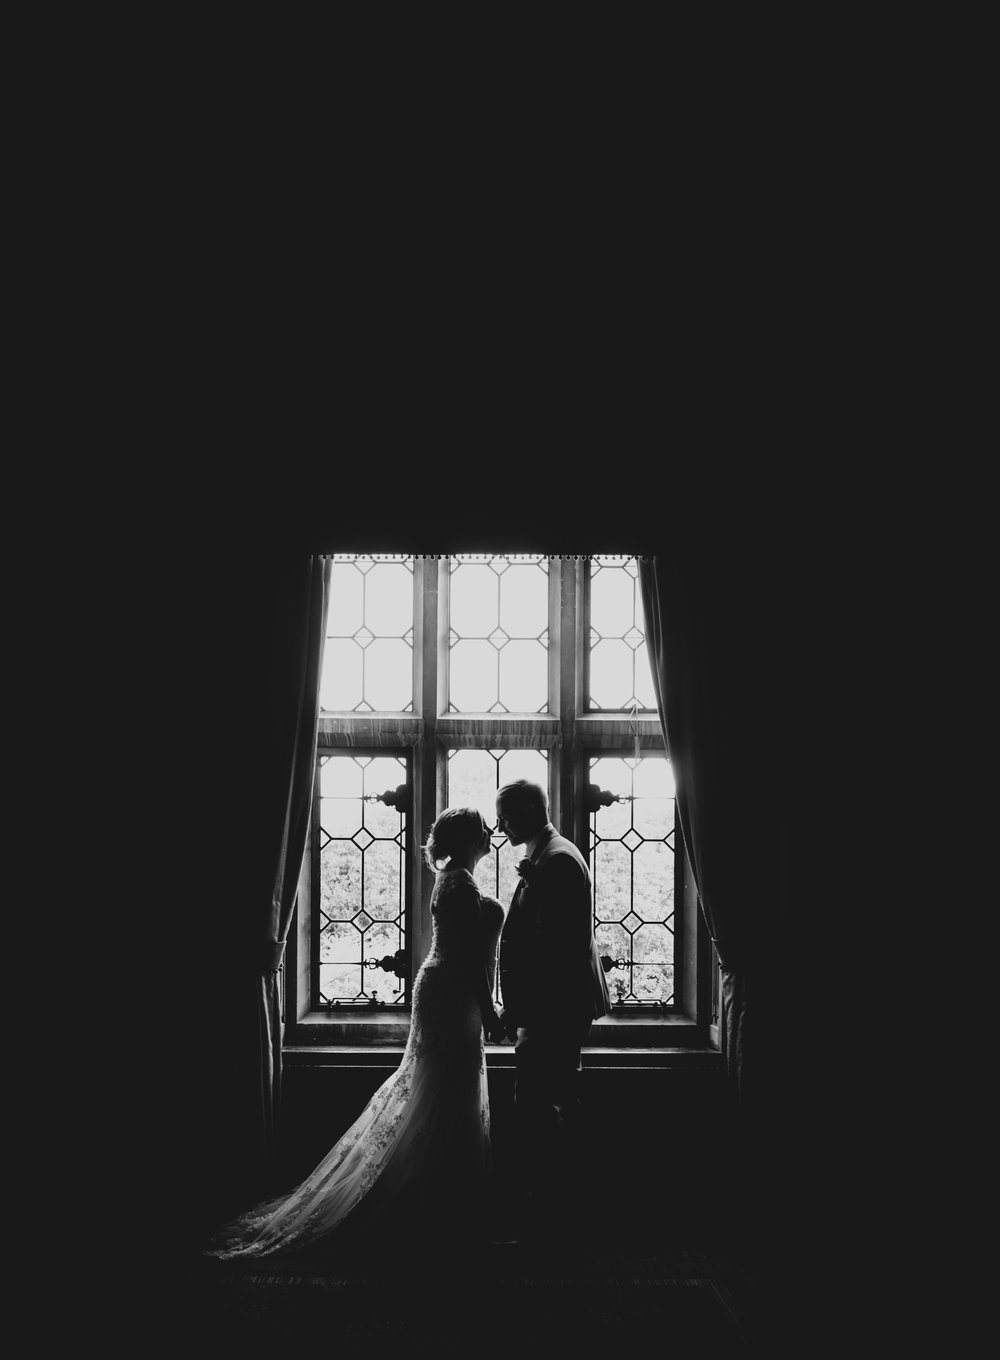 Bride and groom black and white silhouette by a big window at a wedding at Horwood House, Buckinghamshire